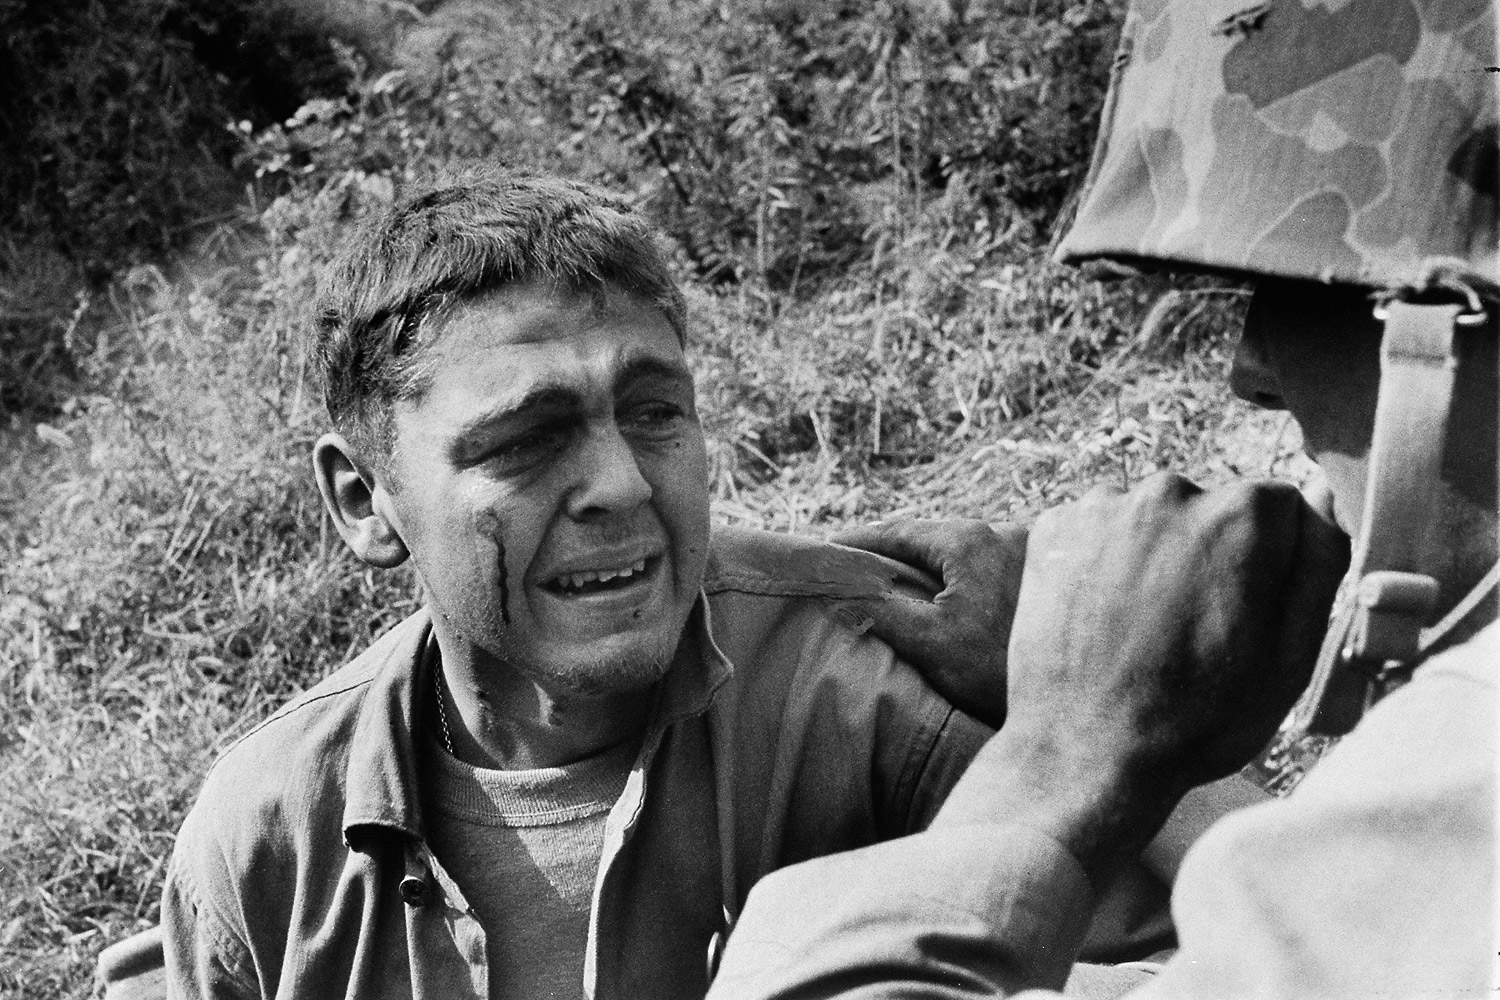 An upset young Marine is comforted after the jeep he was driving hit a landmine around the Naktong River in August 1950.